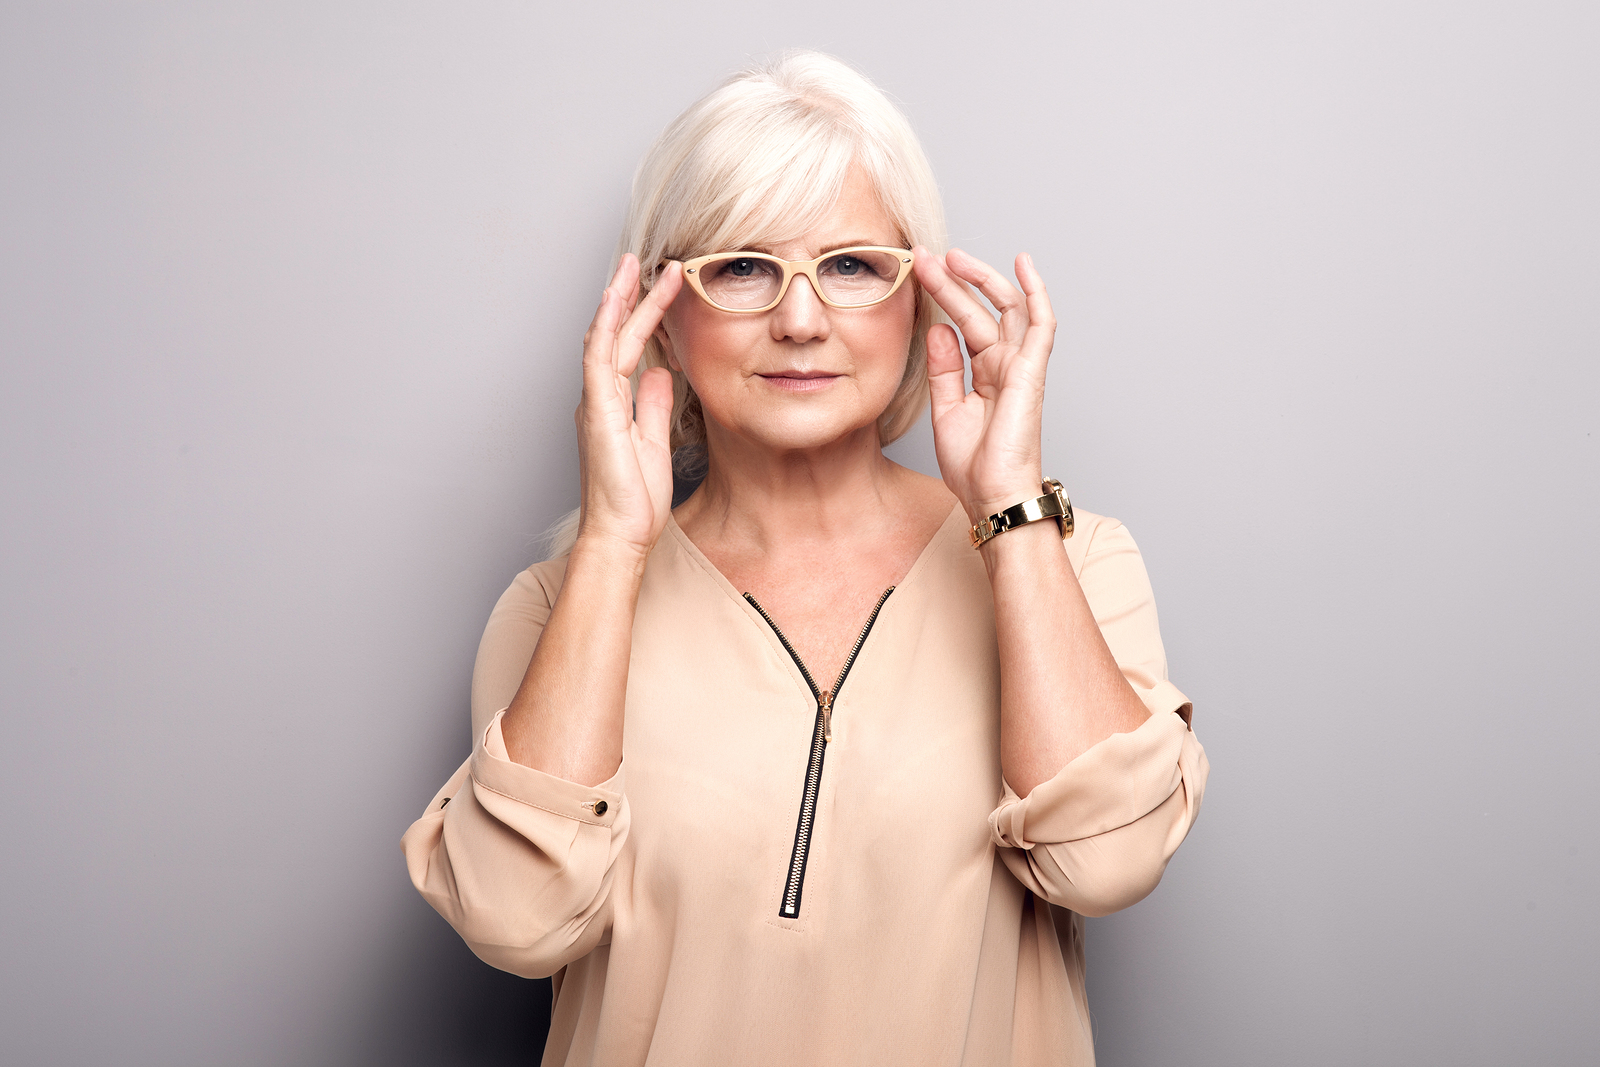 The Best Hairstyles for Women Over 50 | Vagaro Beauty Blog